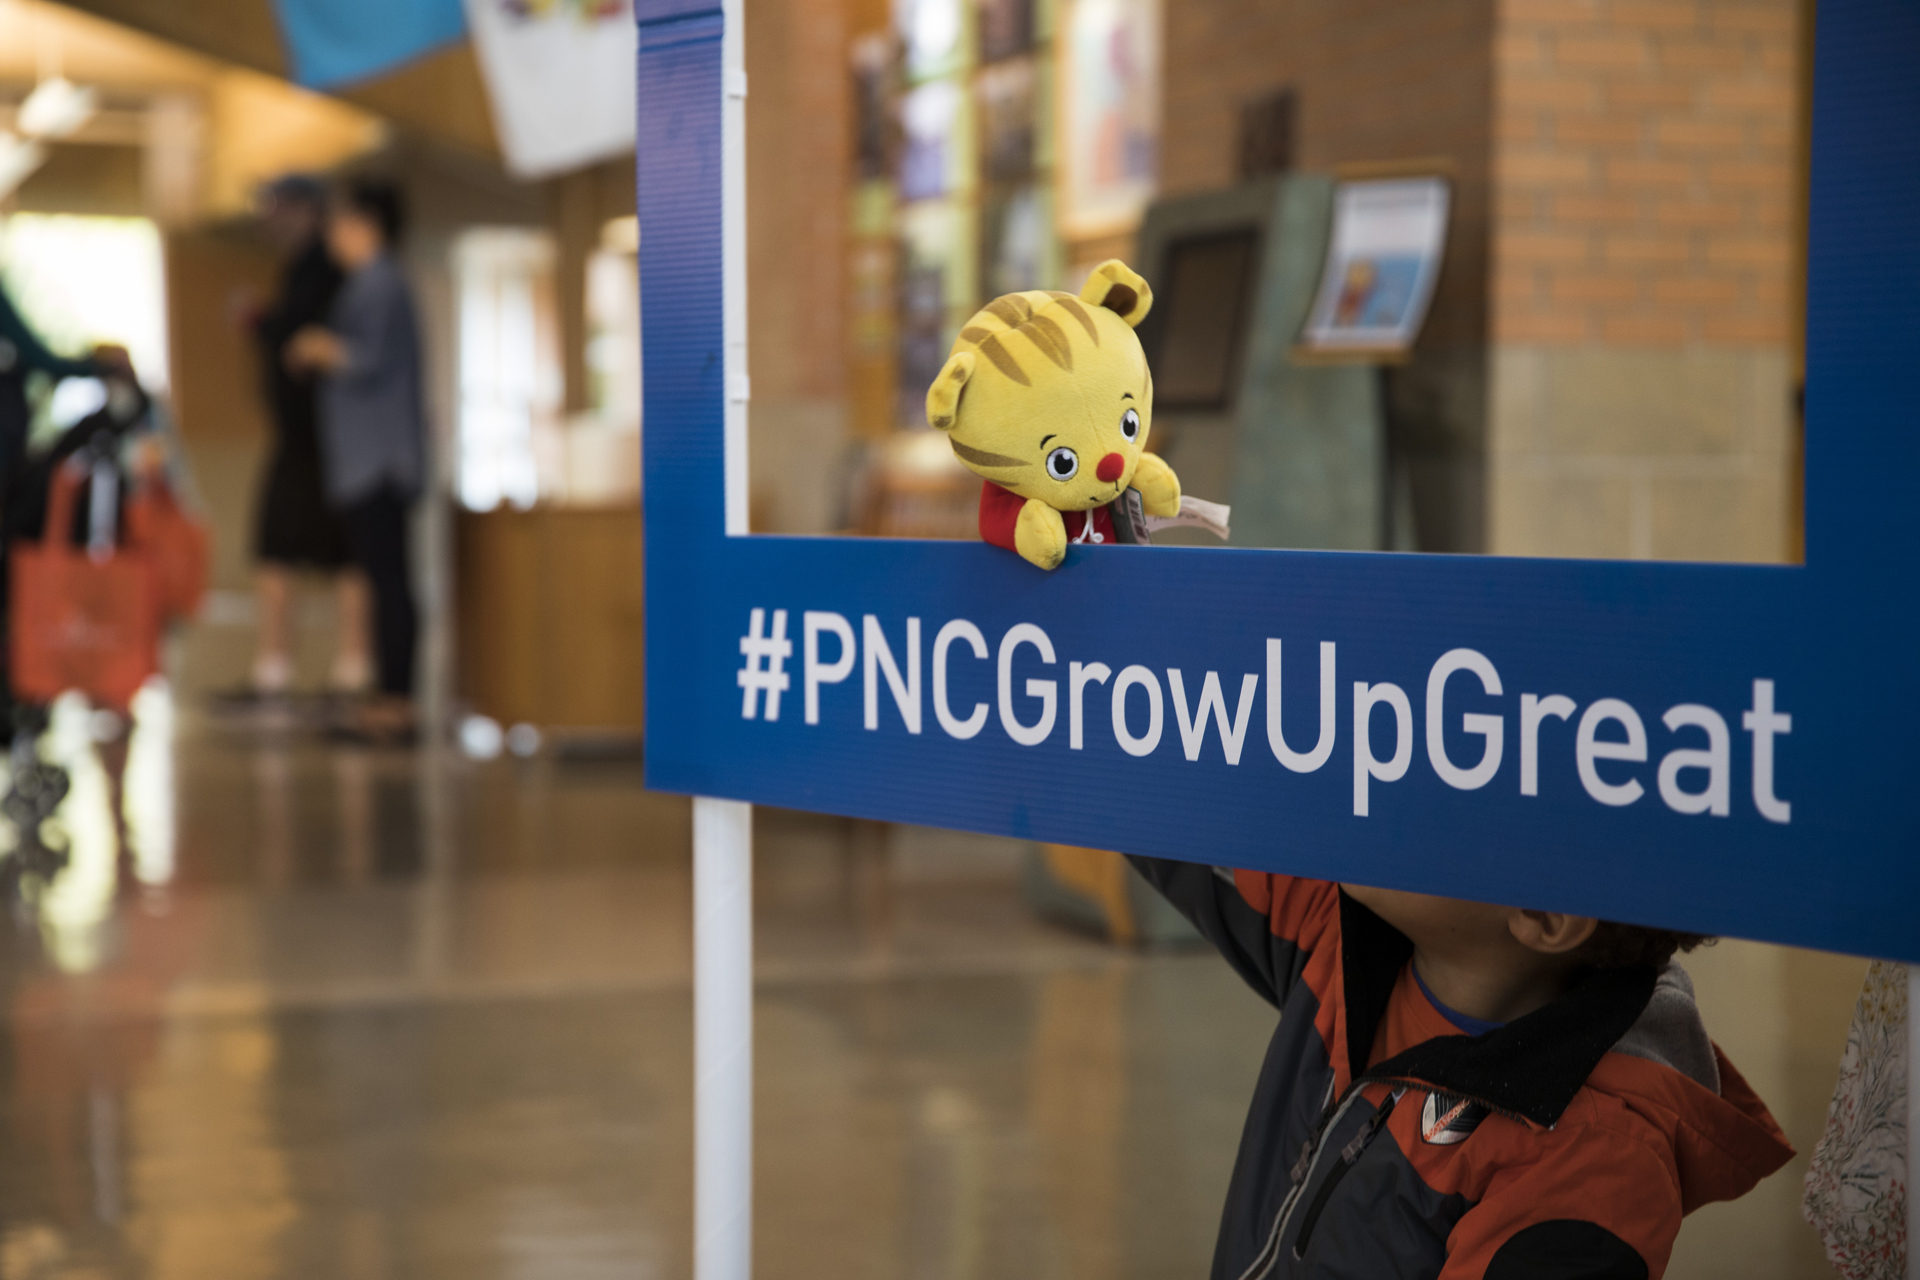 Daniel Tiger puppet at PNCGrowUpGreat sign